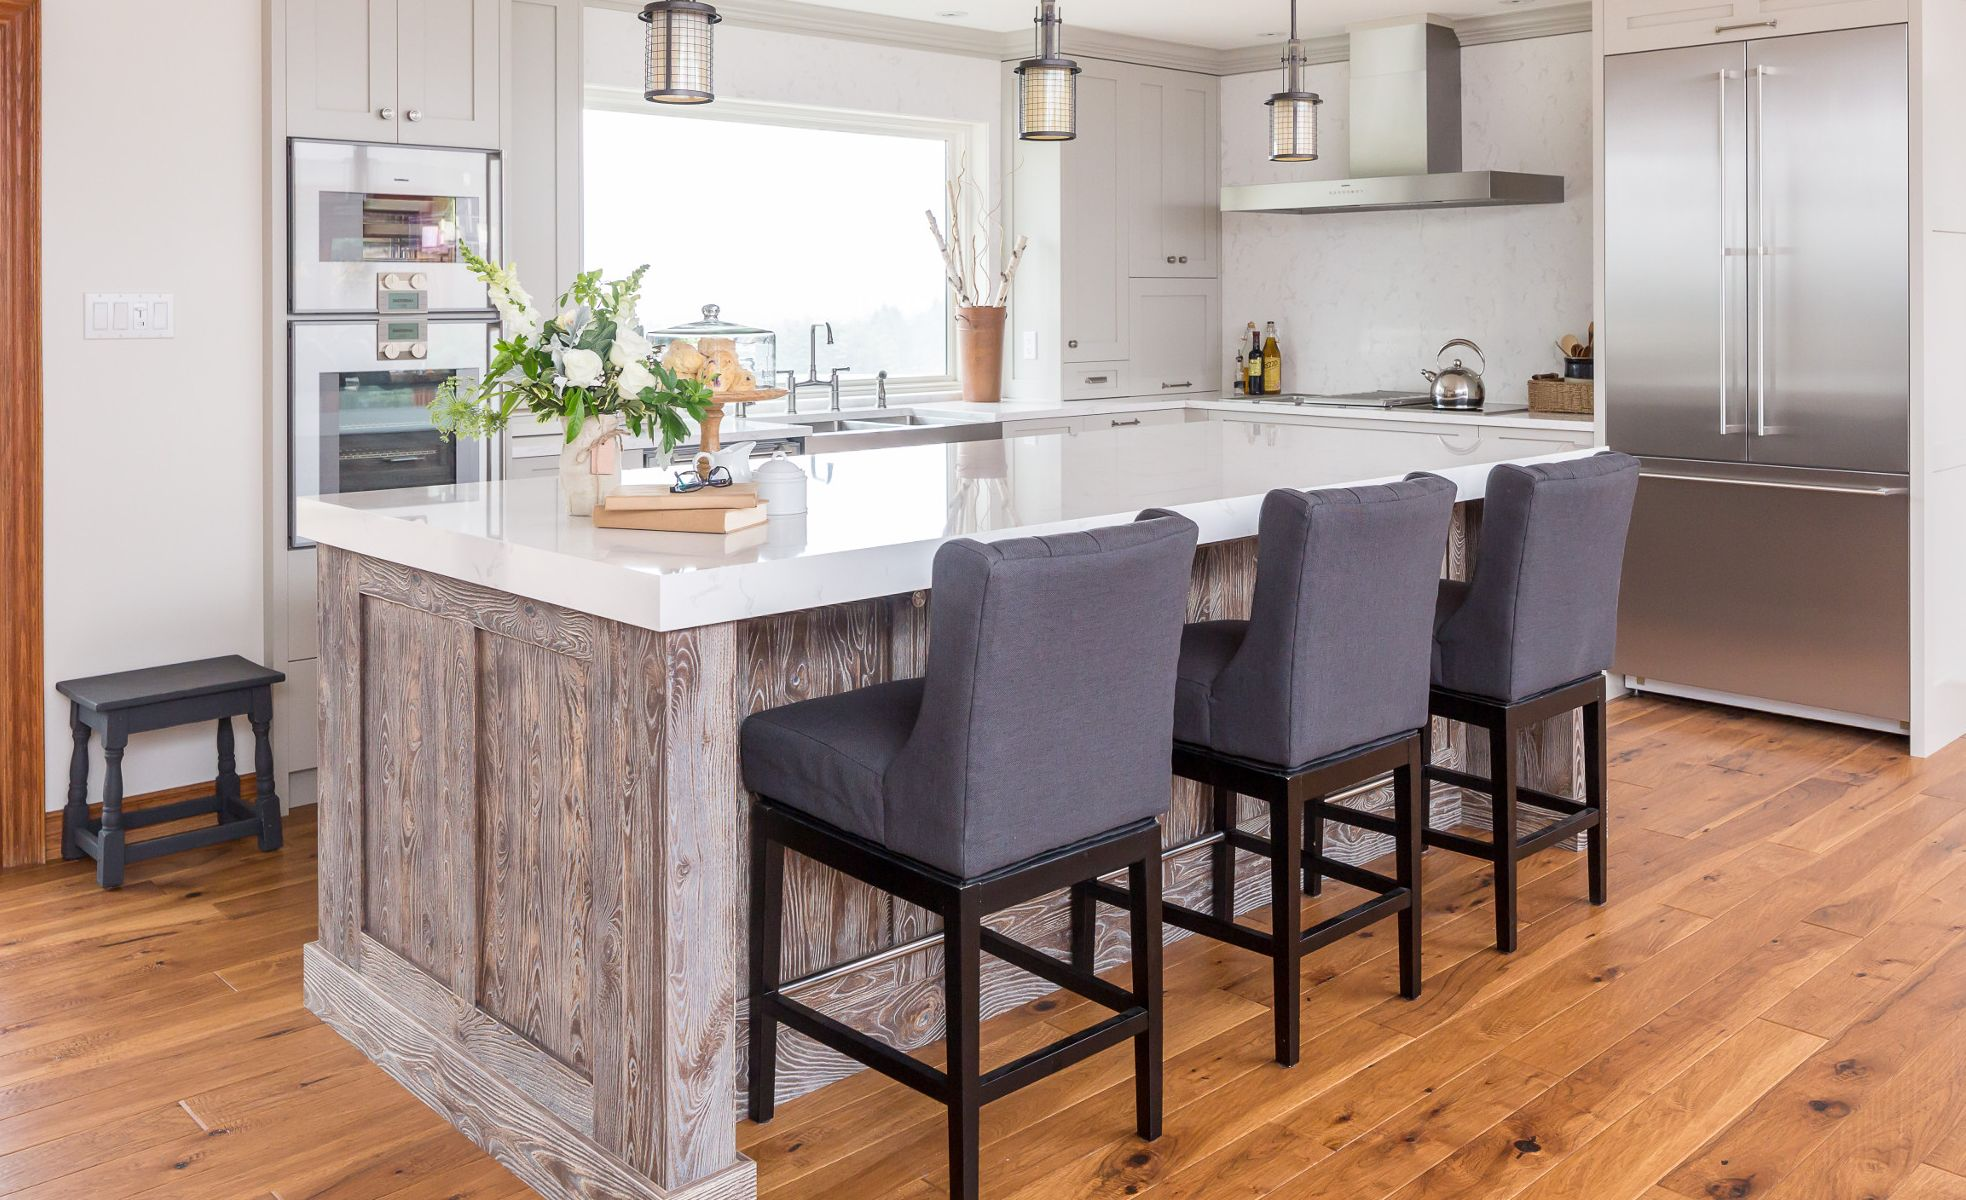 Cambria Torquay countertops paired with wood cabinets.